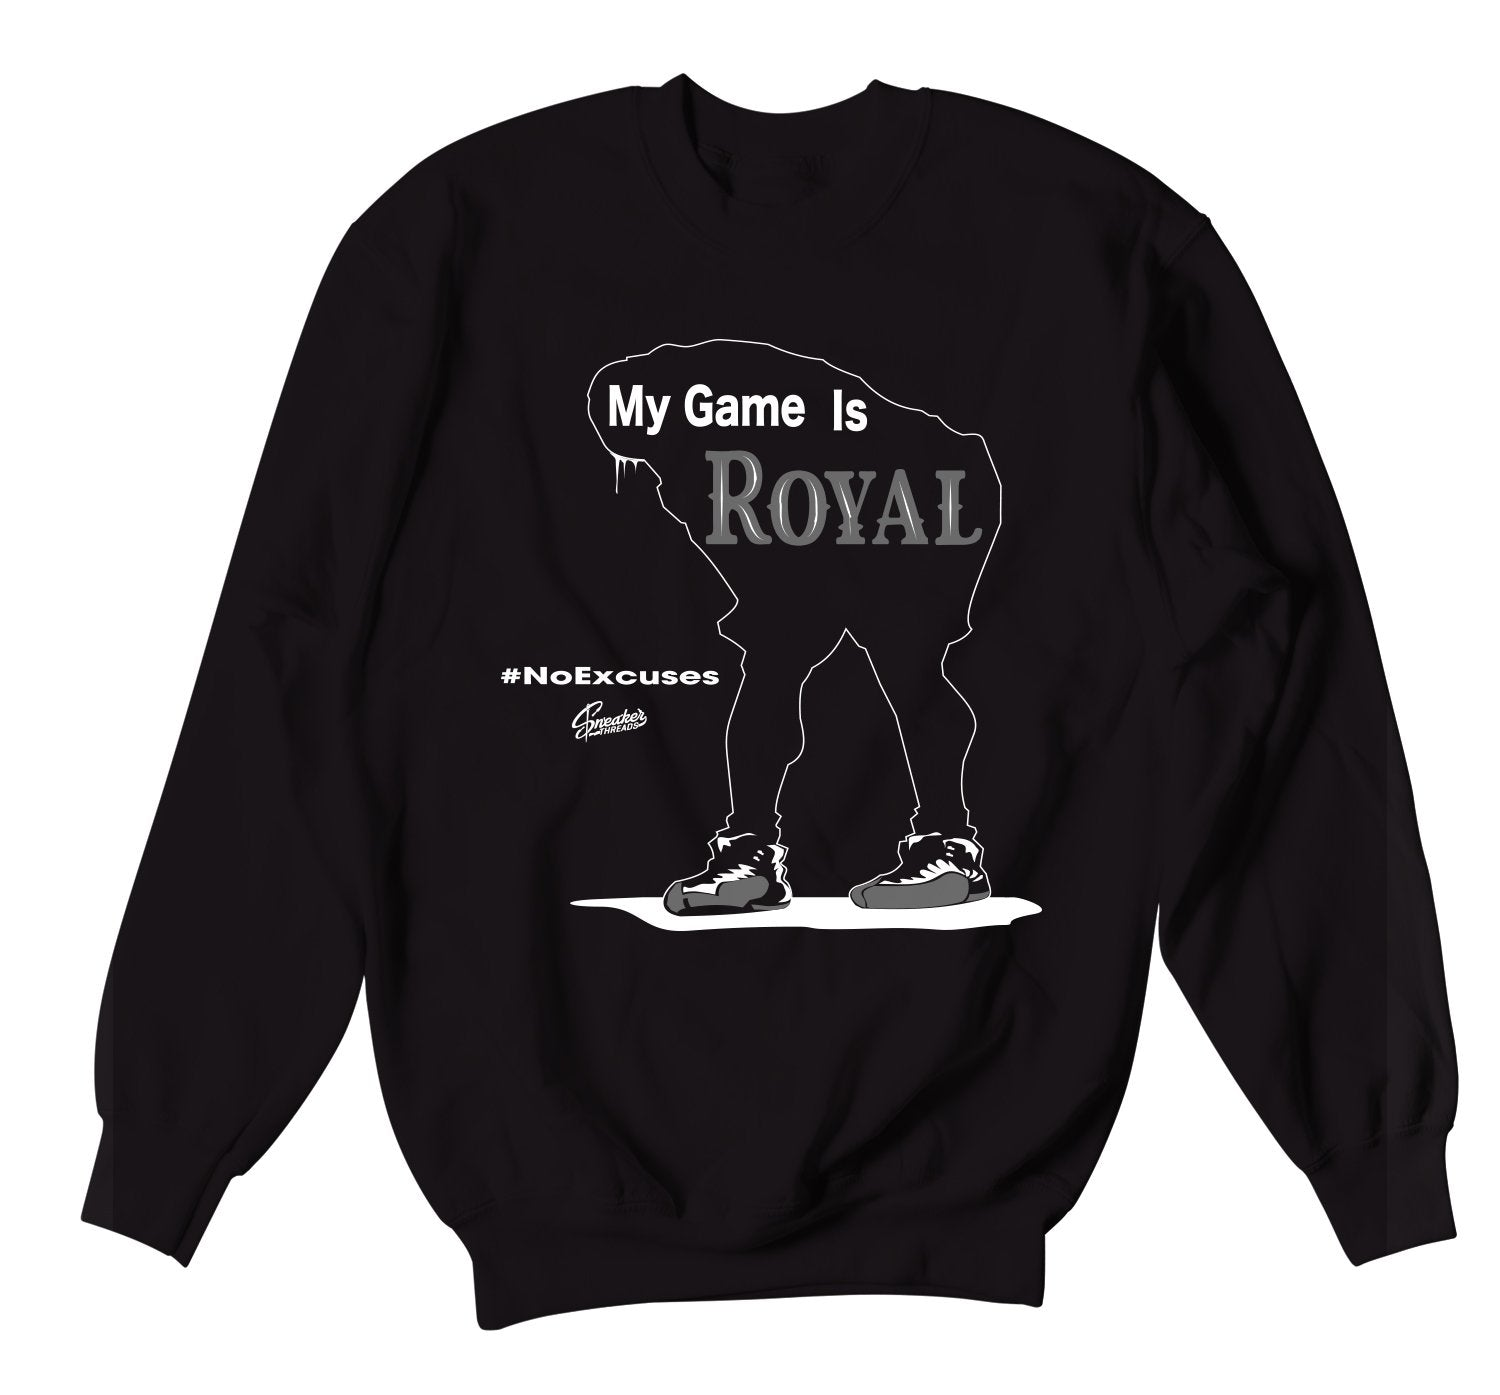 Black crewneck sweaters designed to match the Jordan 12 dark grey sneakers